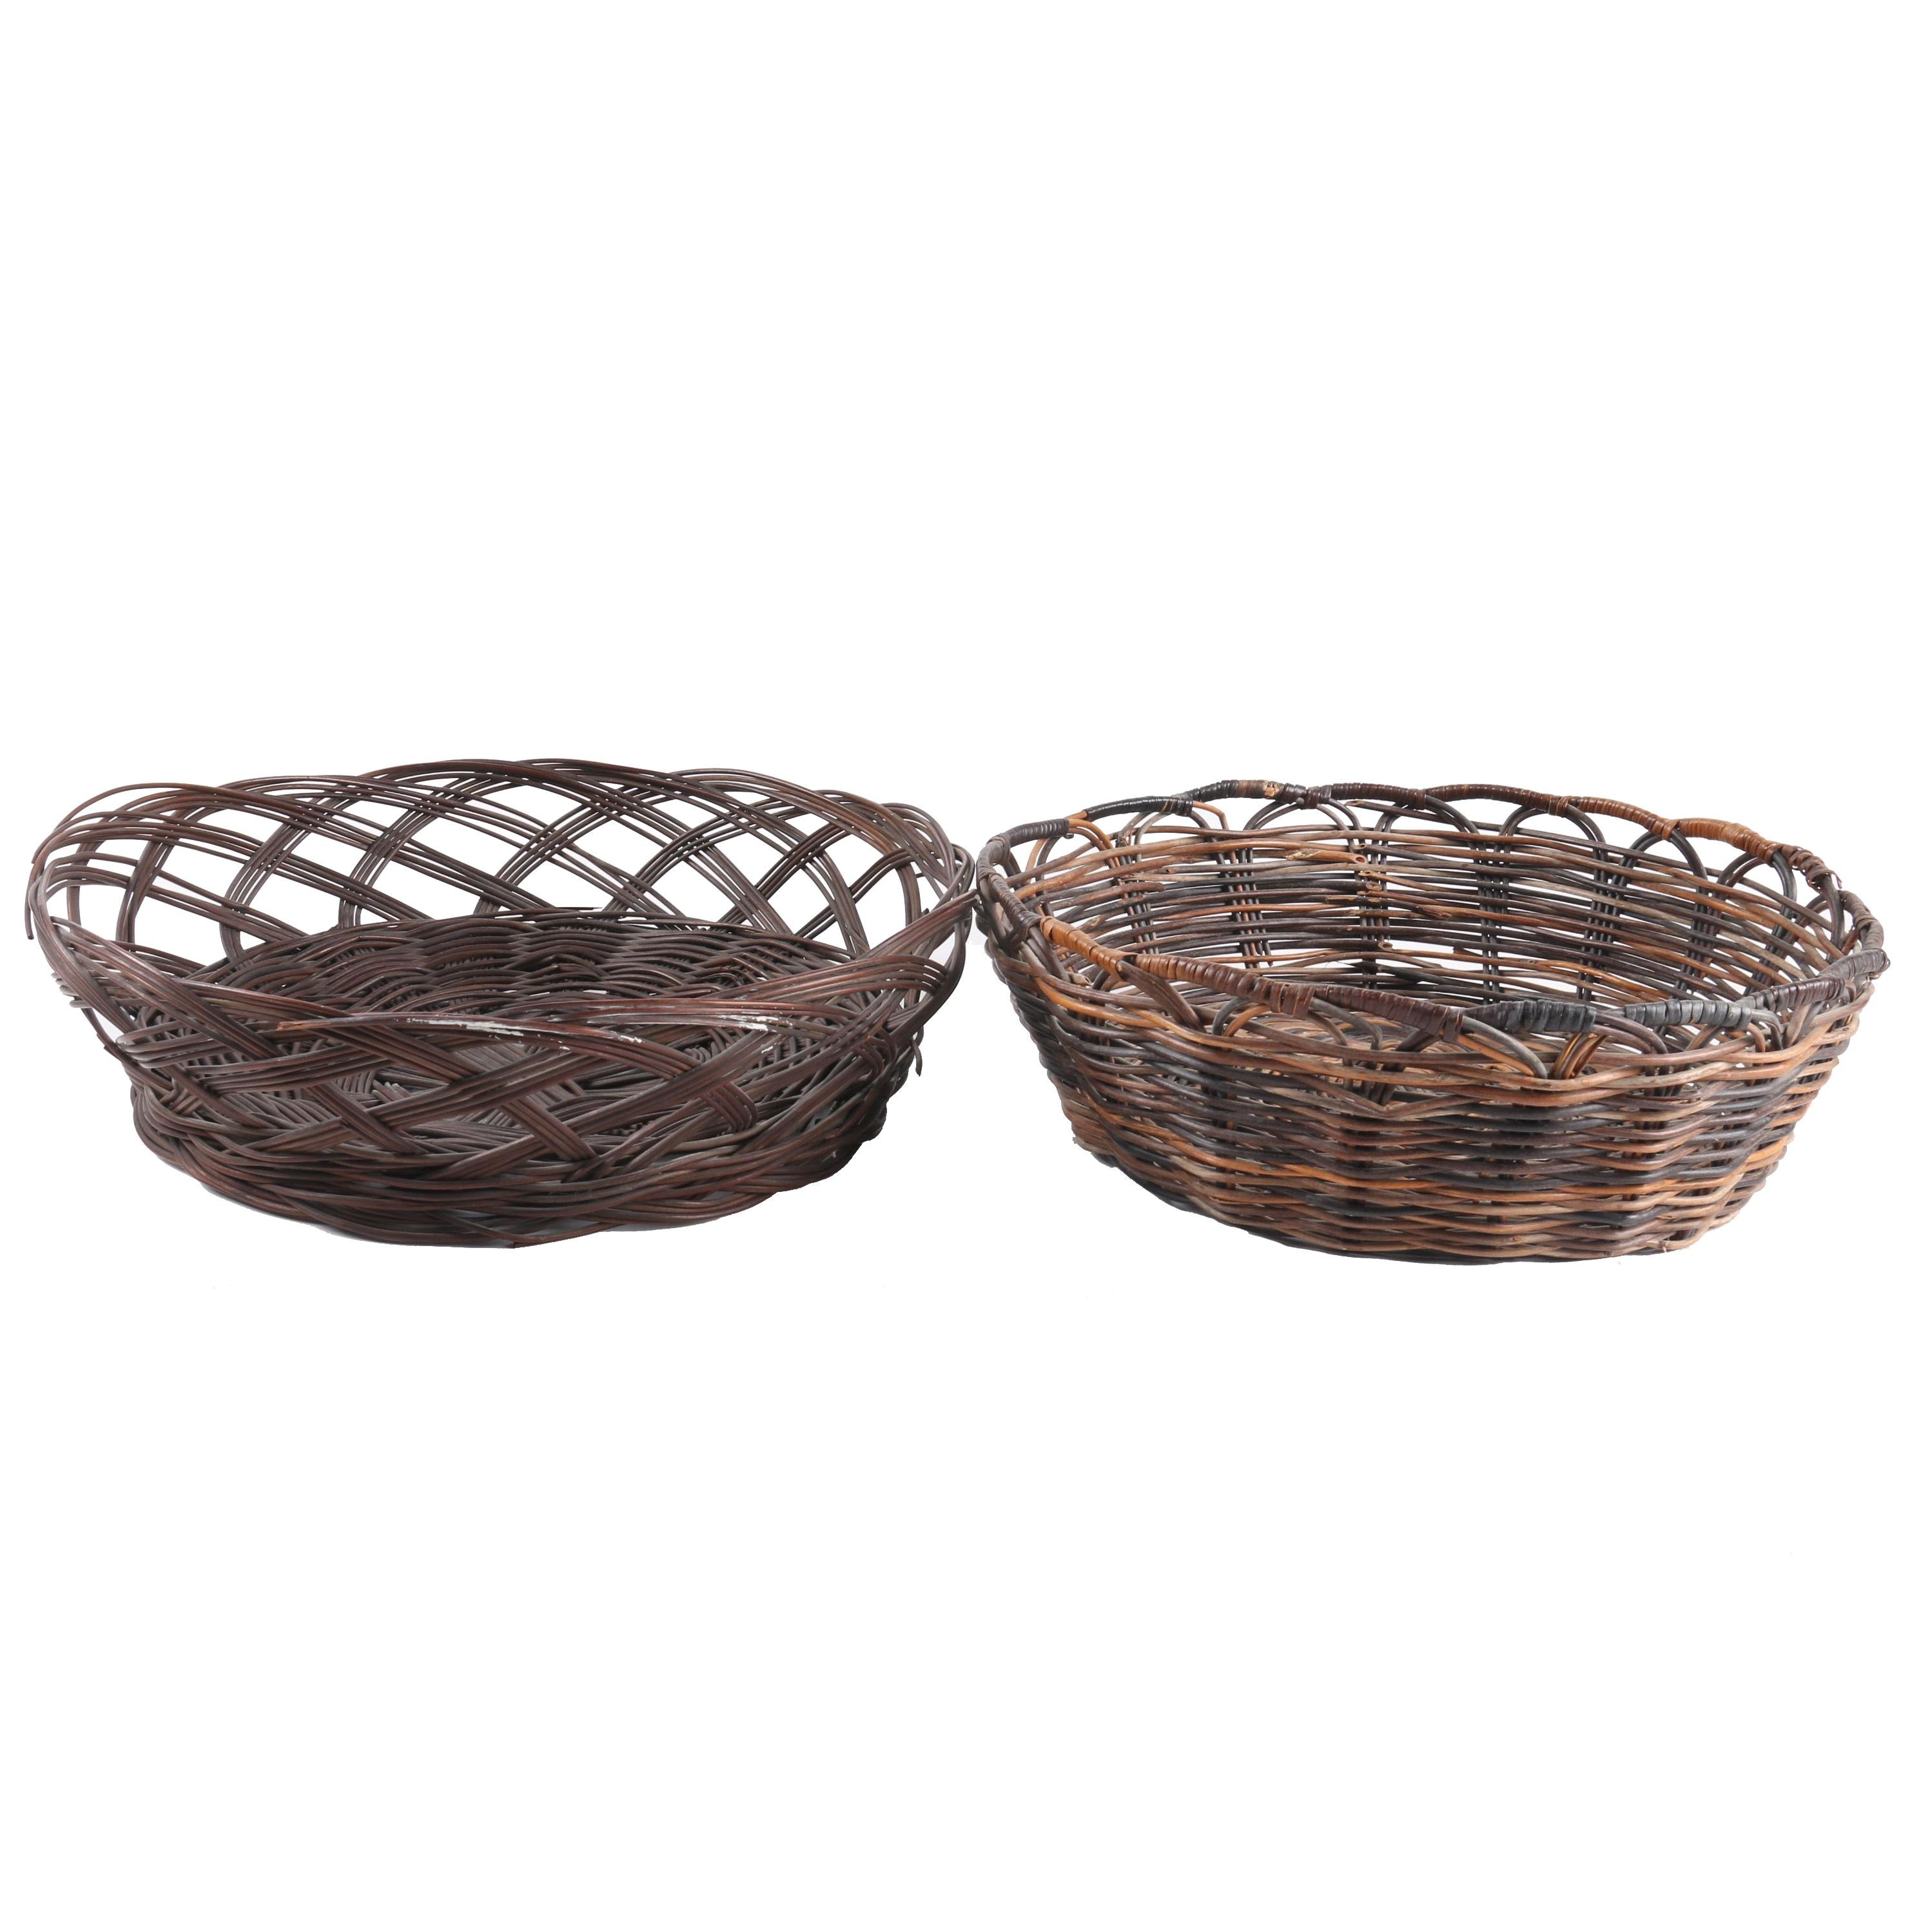 Contemporary Hand Woven Cane Basket Trays